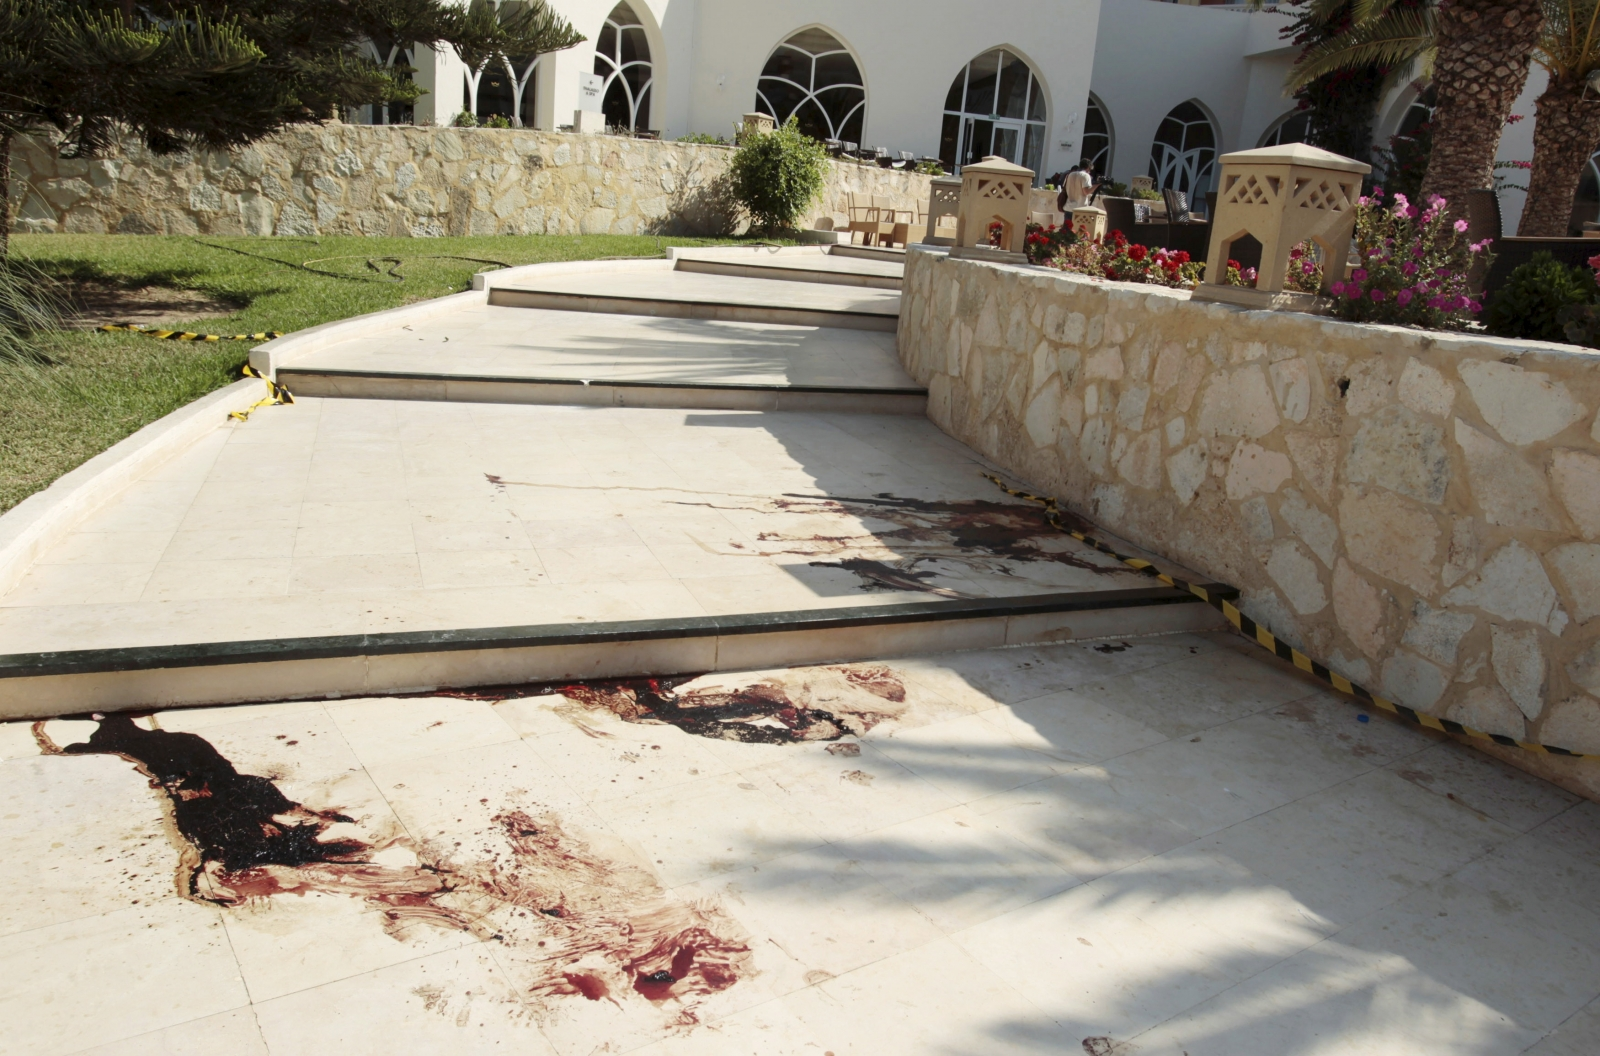 Tunisia Hotel Attack Isis Claim Responsibility For The